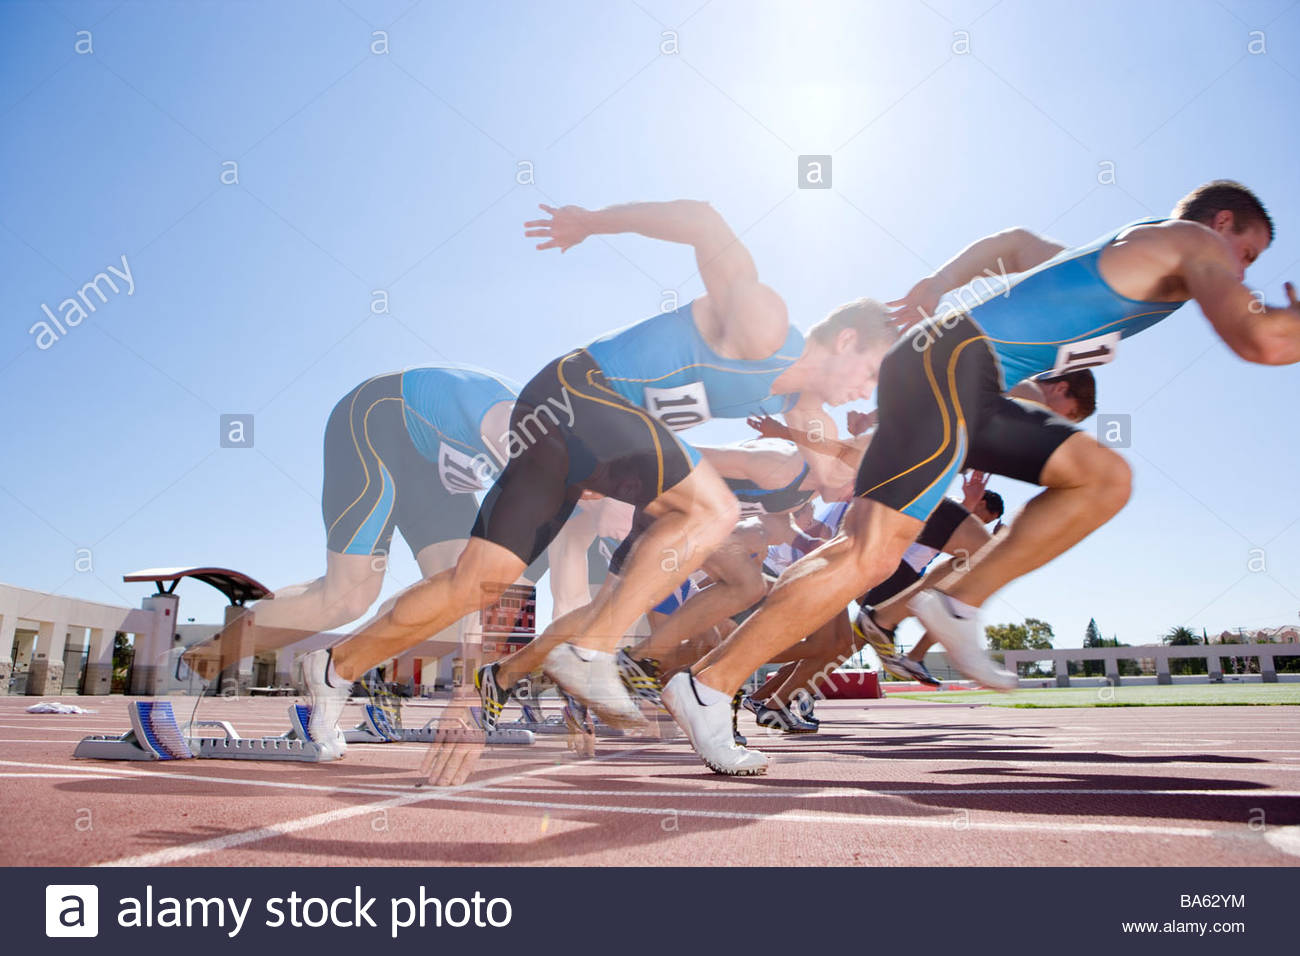 Runners emerging from starting block in multiple exposure - Stock Image